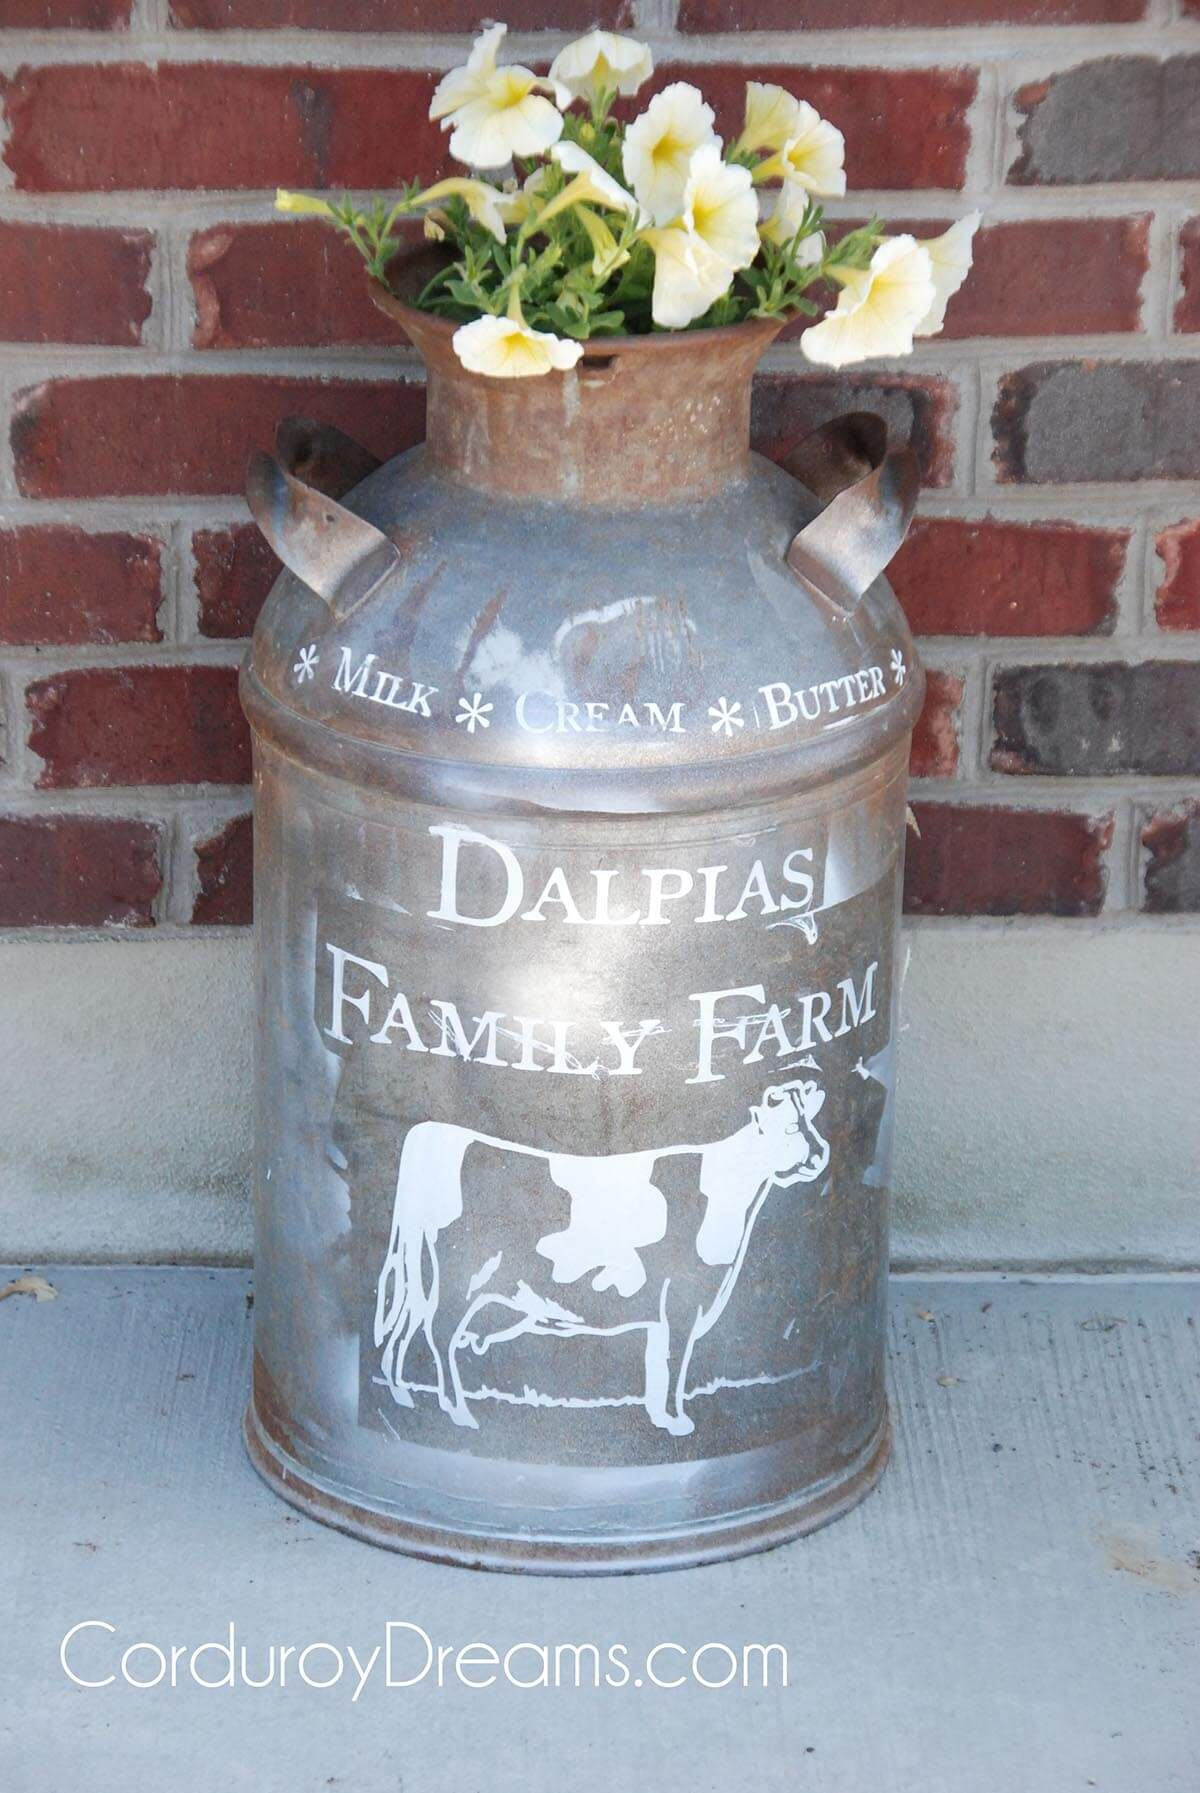 24 Rustic Farmhouse Milk Can Decor Ideas For A Touch Of Country Charm Painted Milk Cans Old Milk Cans Milk Cans